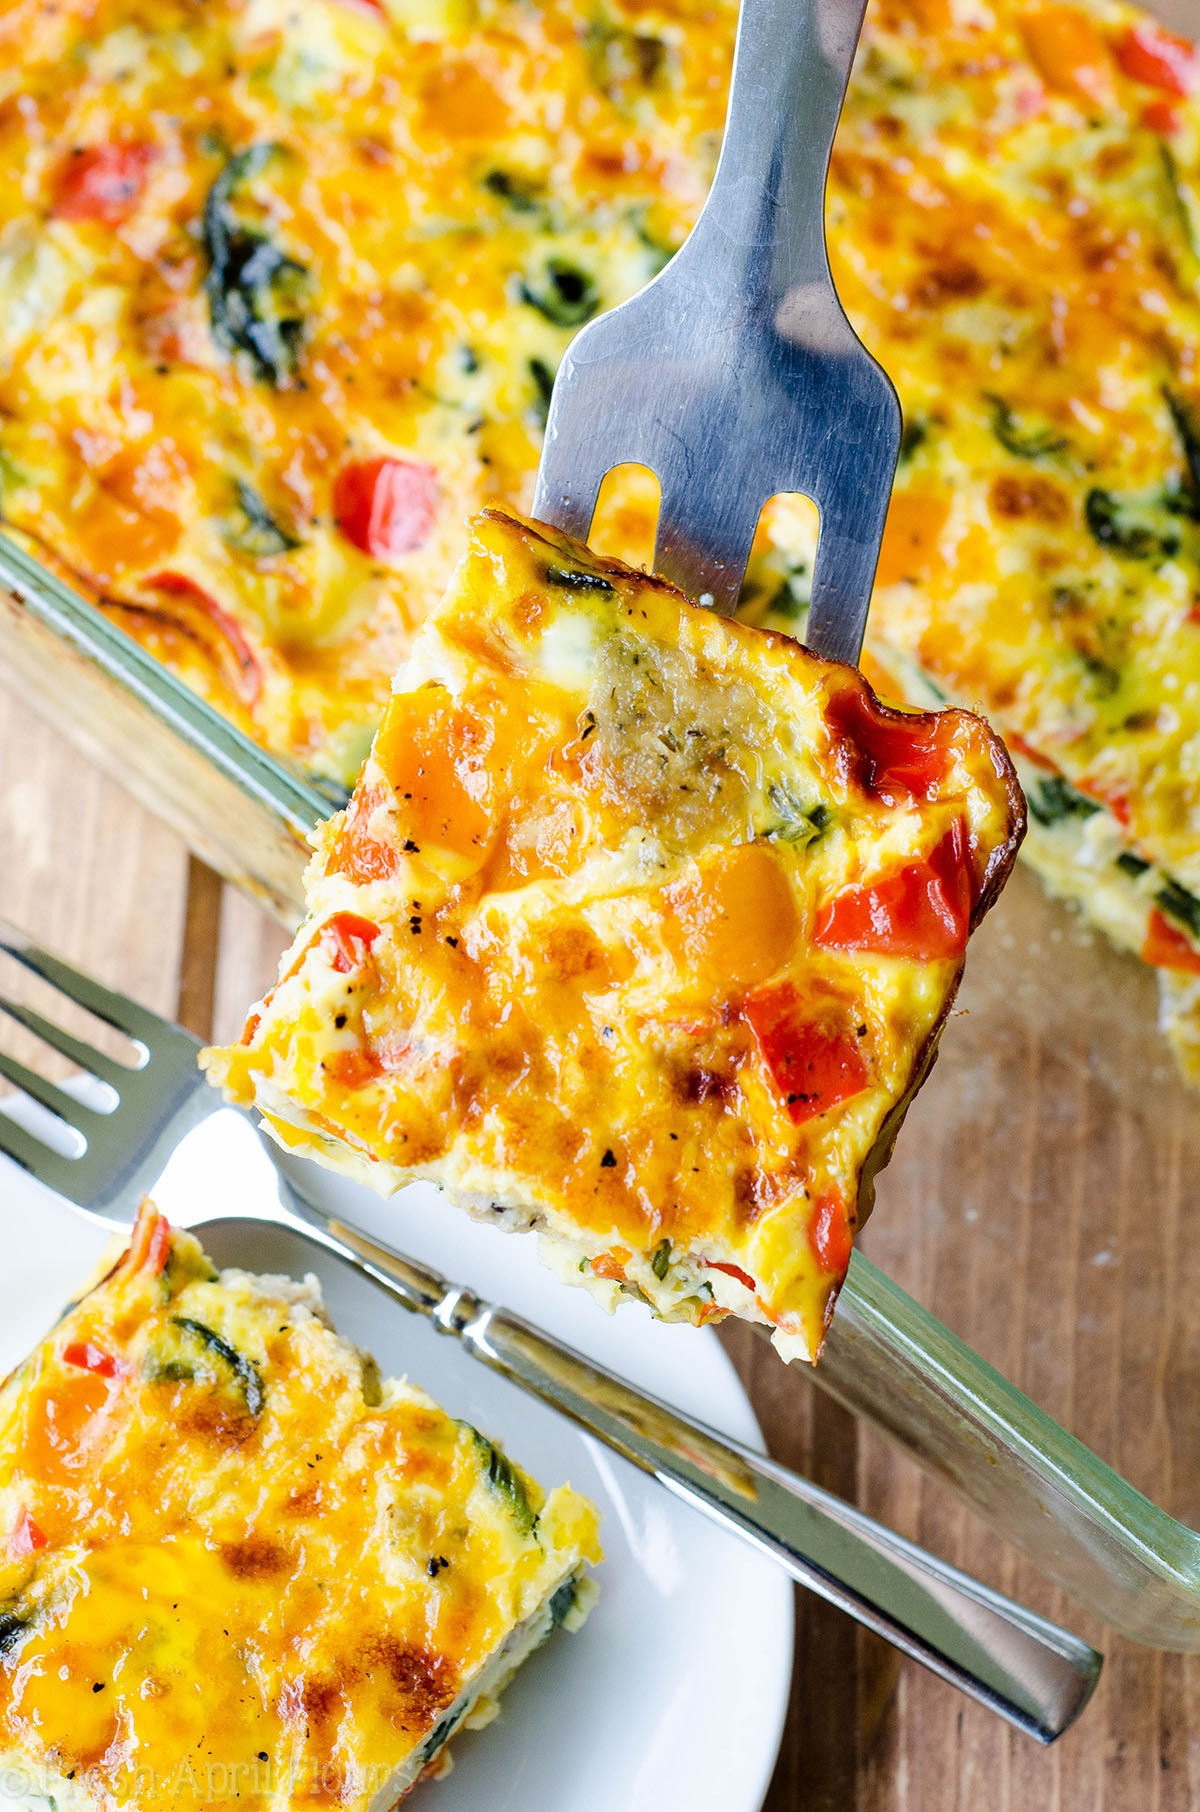 Make Ahead Breakfast Casserole: This overnight sausage, vegetable, and egg casserole can be frozen or made a day in advance for easy entertaining. Completely customizable and great for feeding a crowd!